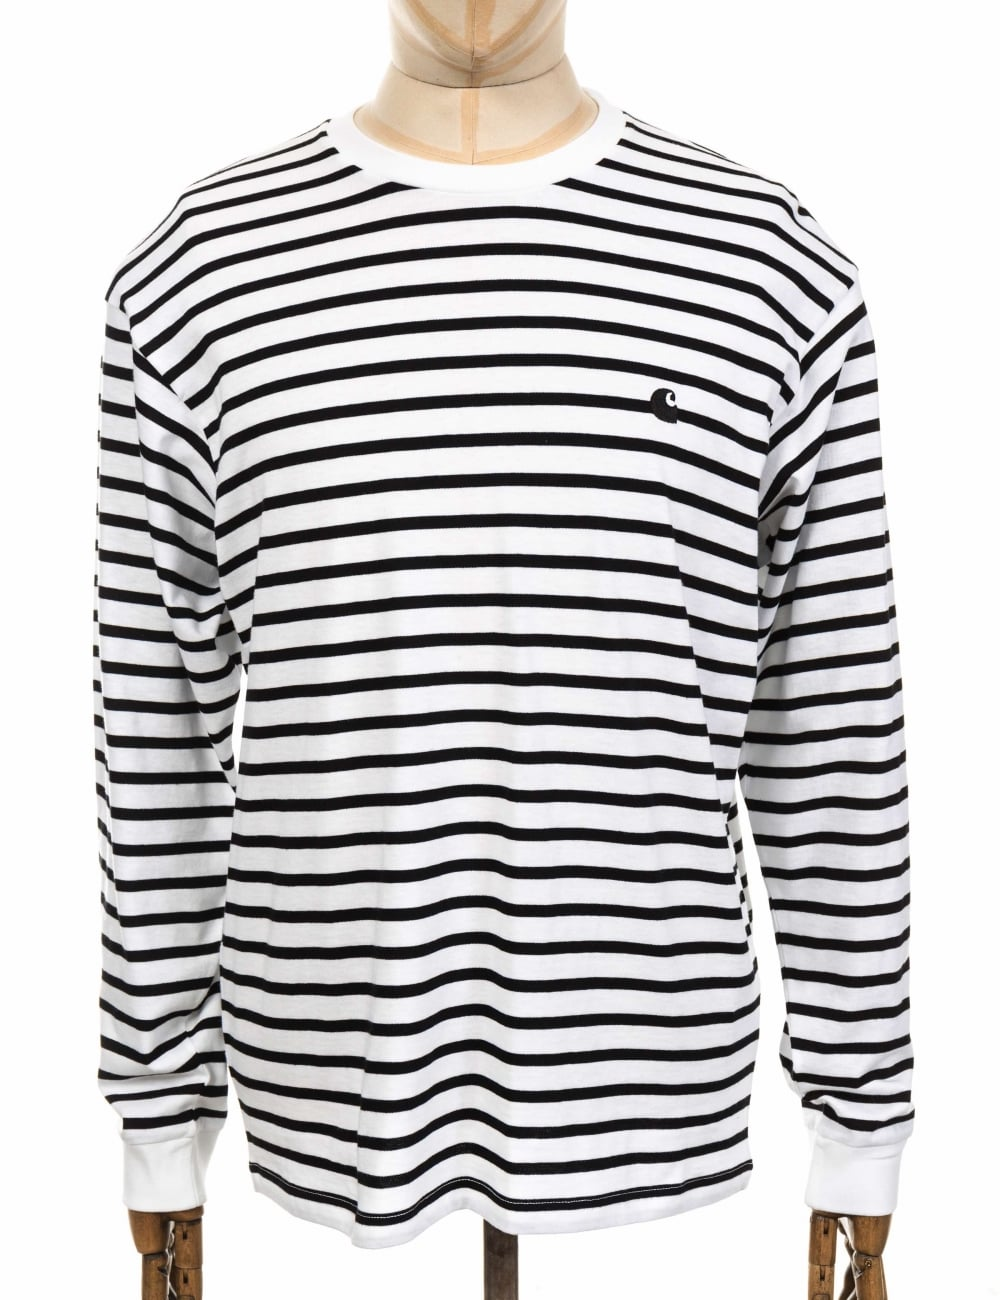 1215fabb1eaa Carhartt WIP L/S Champ Tee - Black/White/Black - Clothing from Fat ...